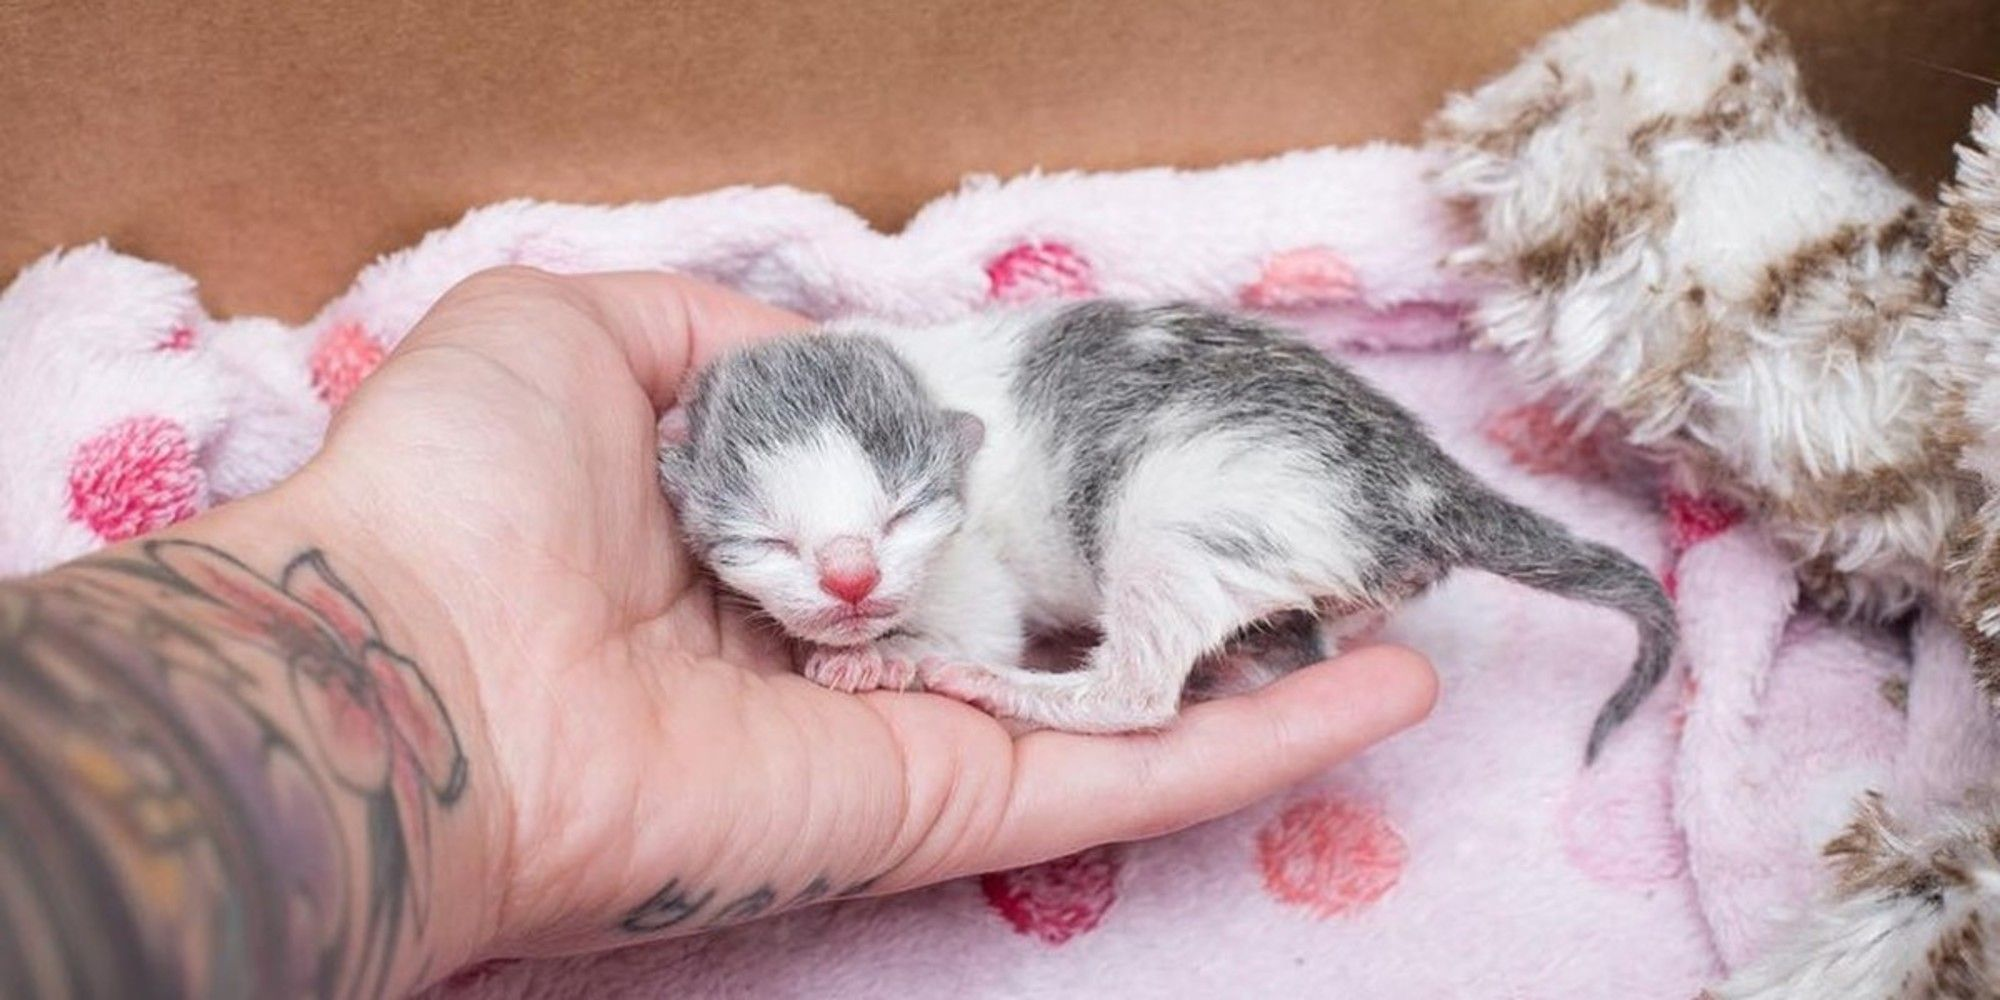 Tiniest Orphaned Kitten Holds Onto His Rescuer For Love Then And Now Love Meow Kittens Cutest Baby Cute Baby Animals Baby Kittens